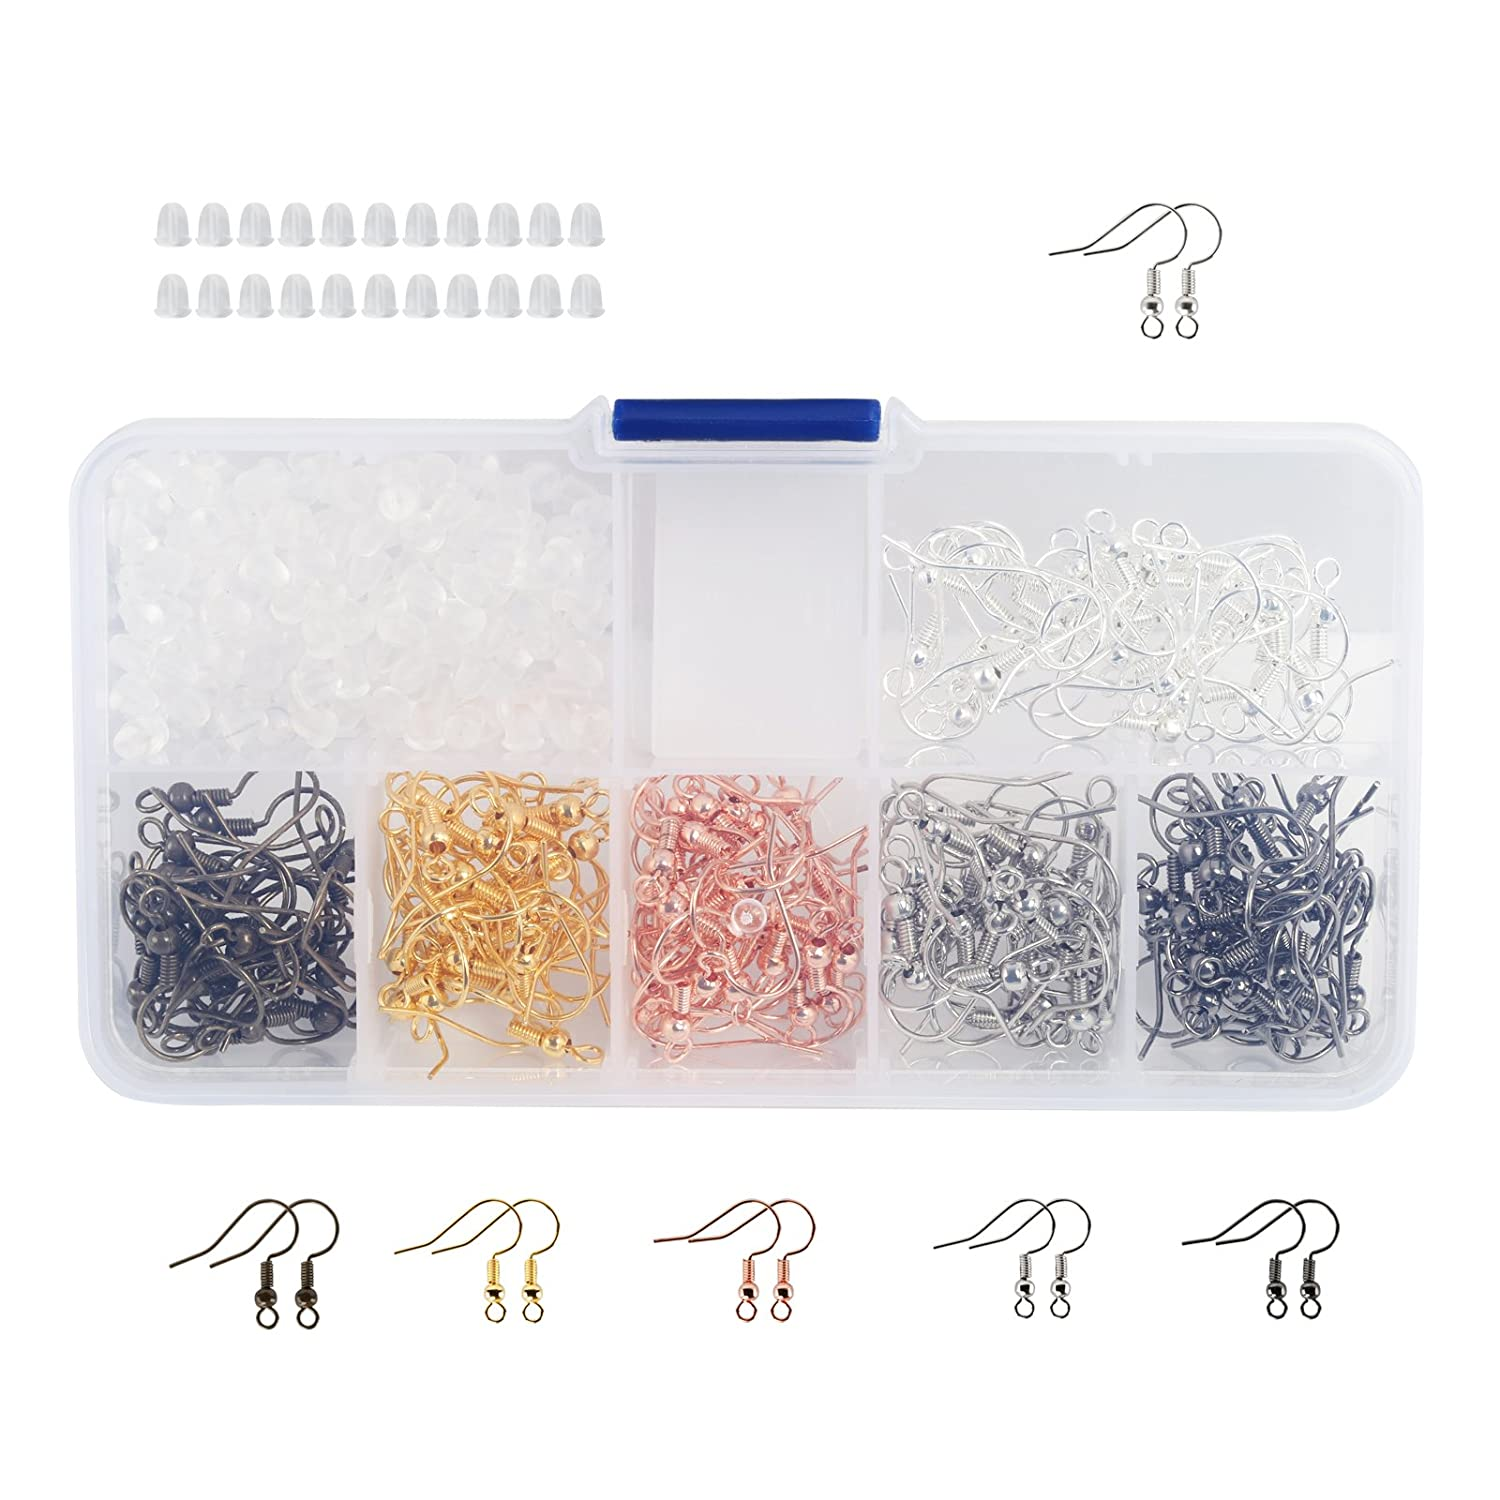 Naler 180Pcs 6 Colors Earring Hooks Ear Wires French Hooks Fish Hooks and 200Pcs Clear Rubber Earring Backs with Storage Case for DIY Jewelry Making